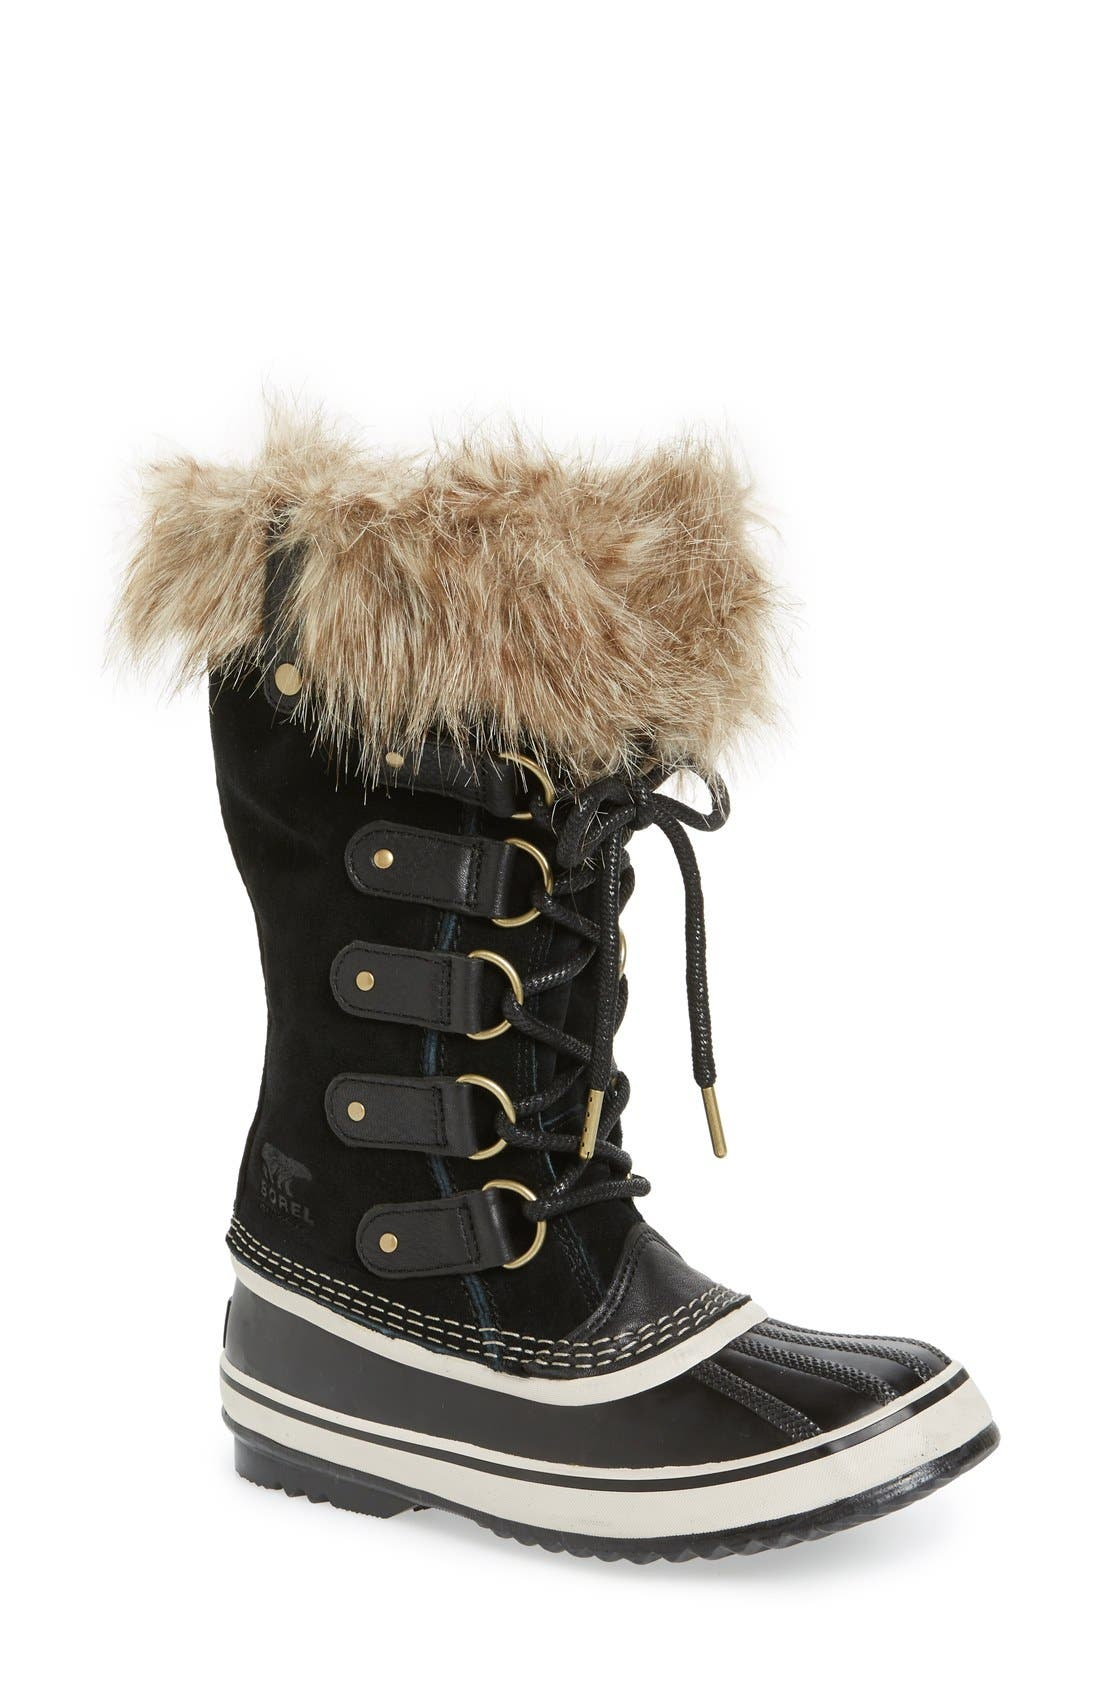 'Joan of Arctic' Waterproof Snow Boot,                             Main thumbnail 1, color,                             BLACK/ STONE